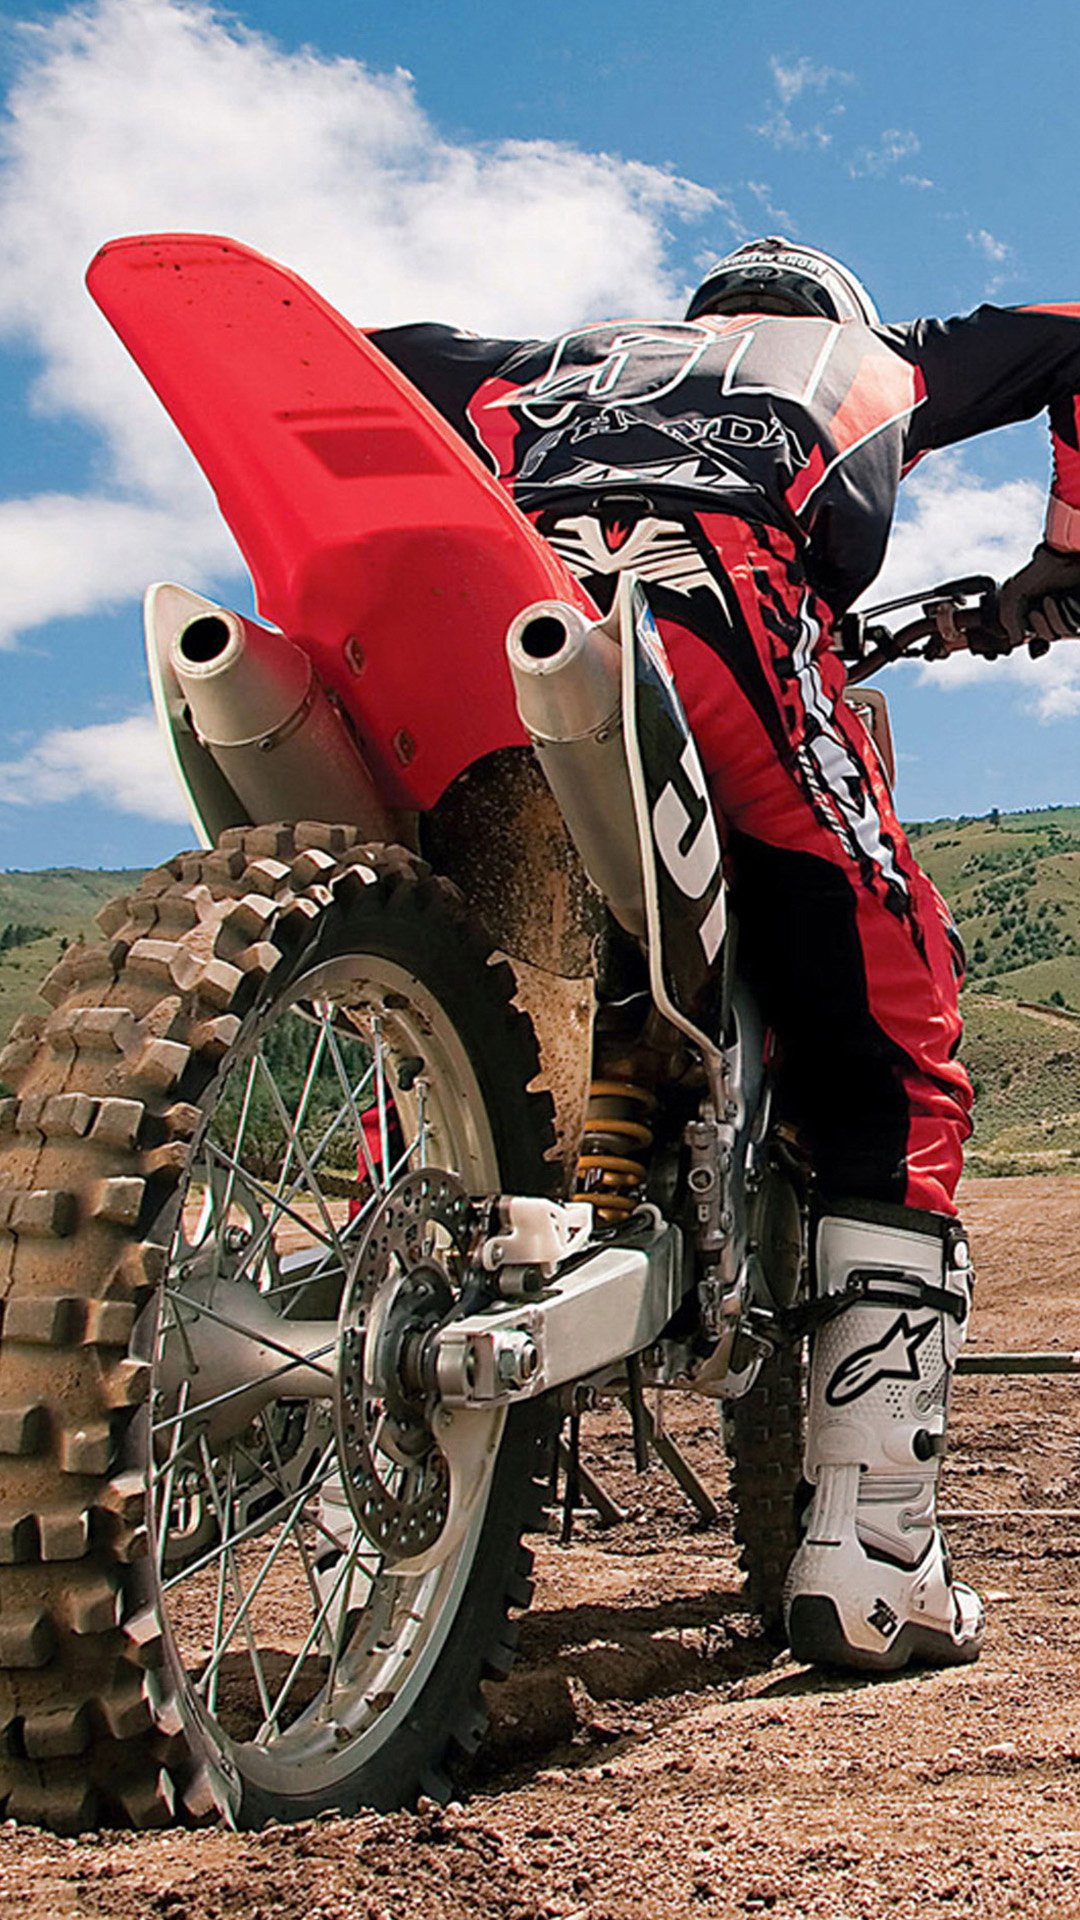 30 Wallpaper Of Motor Cross In High Resolution